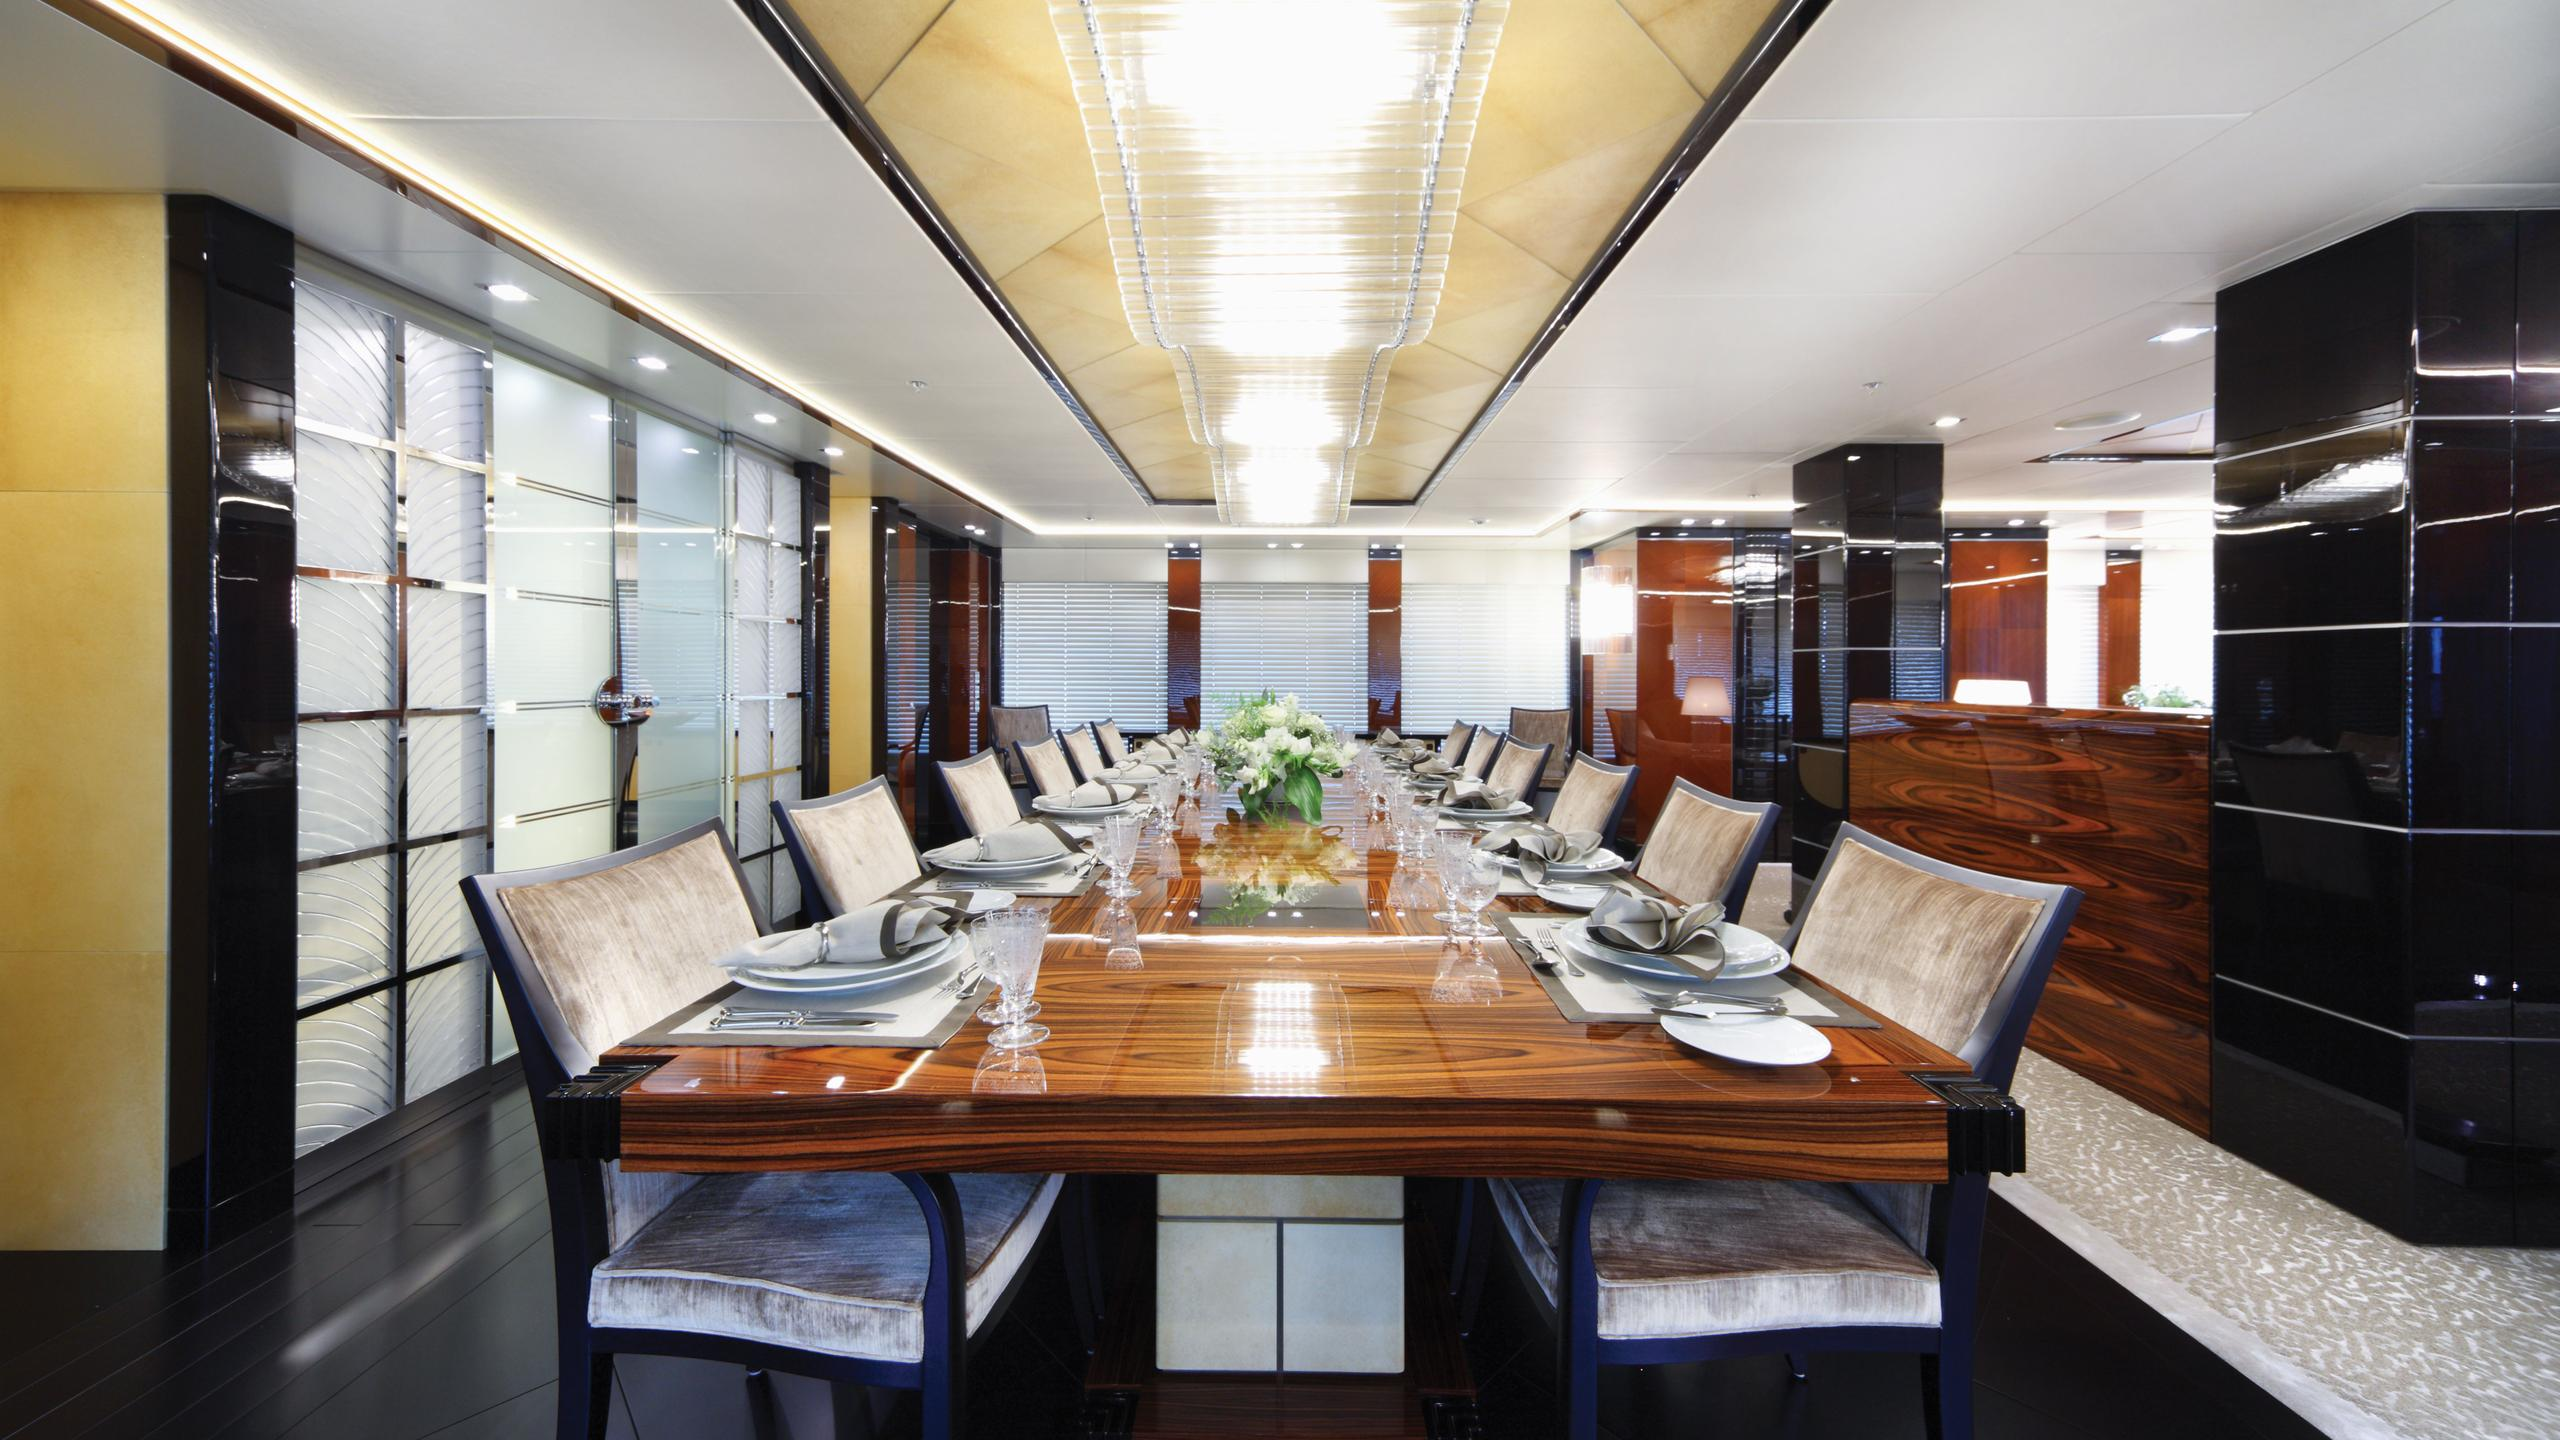 meridian-motor-yacht-icon-2012-62m-dining-room